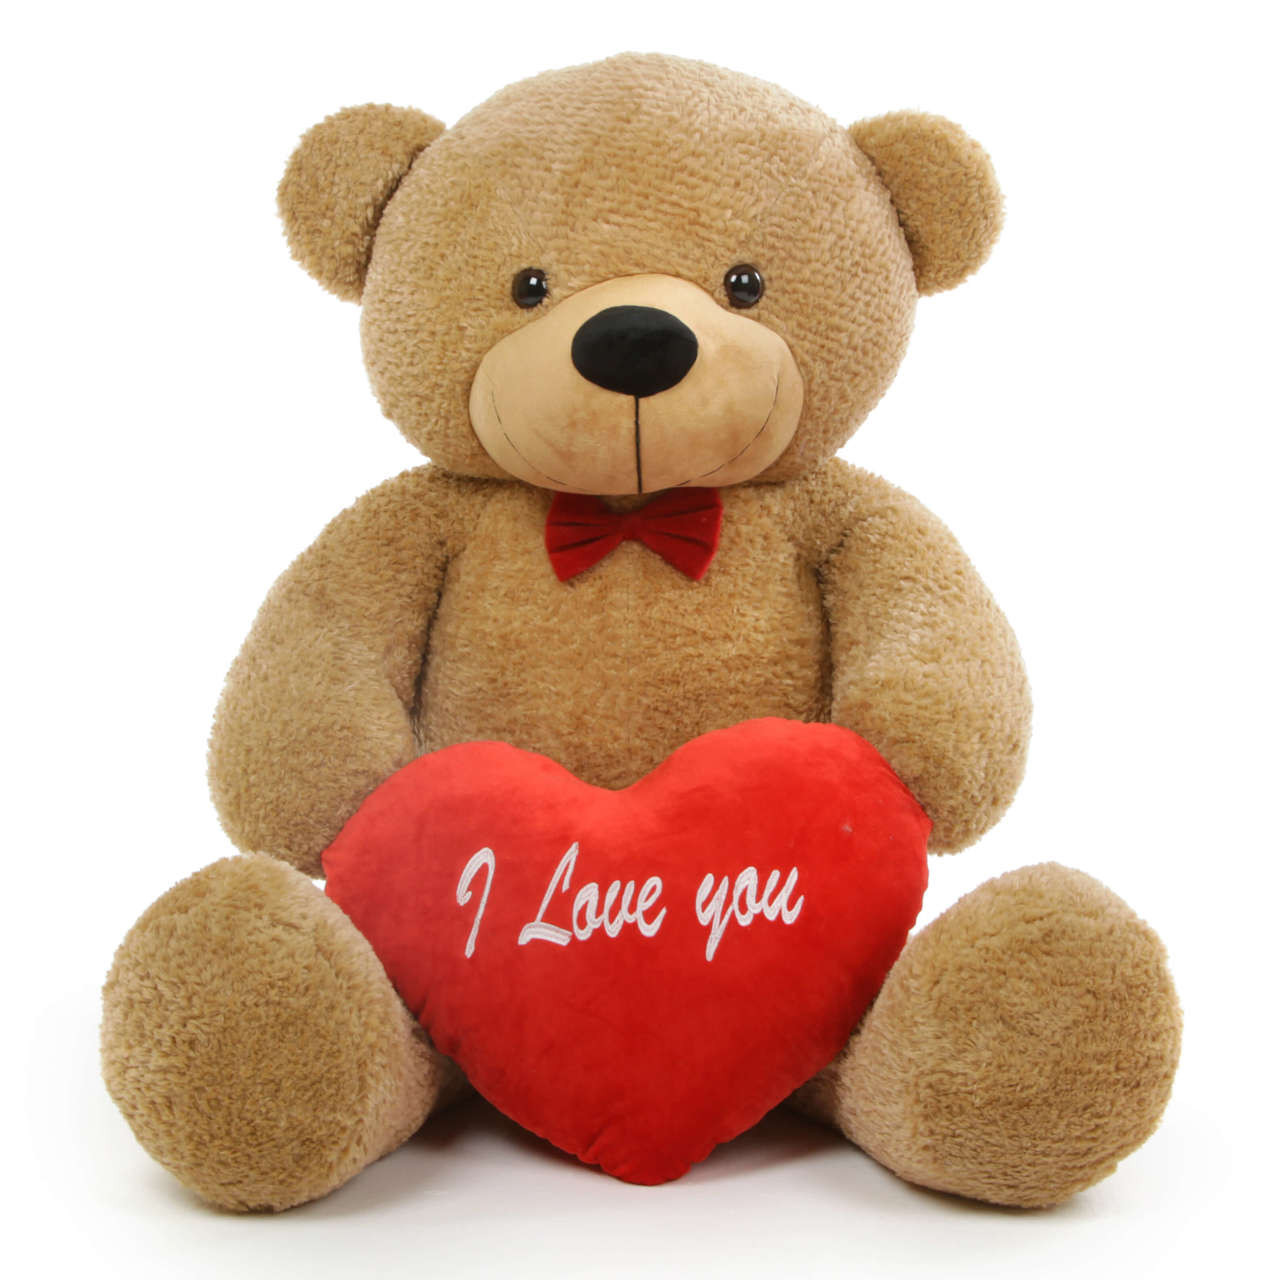 Shaggy L Cuddles 48 Amber Teddy Bear W I Love You Heart